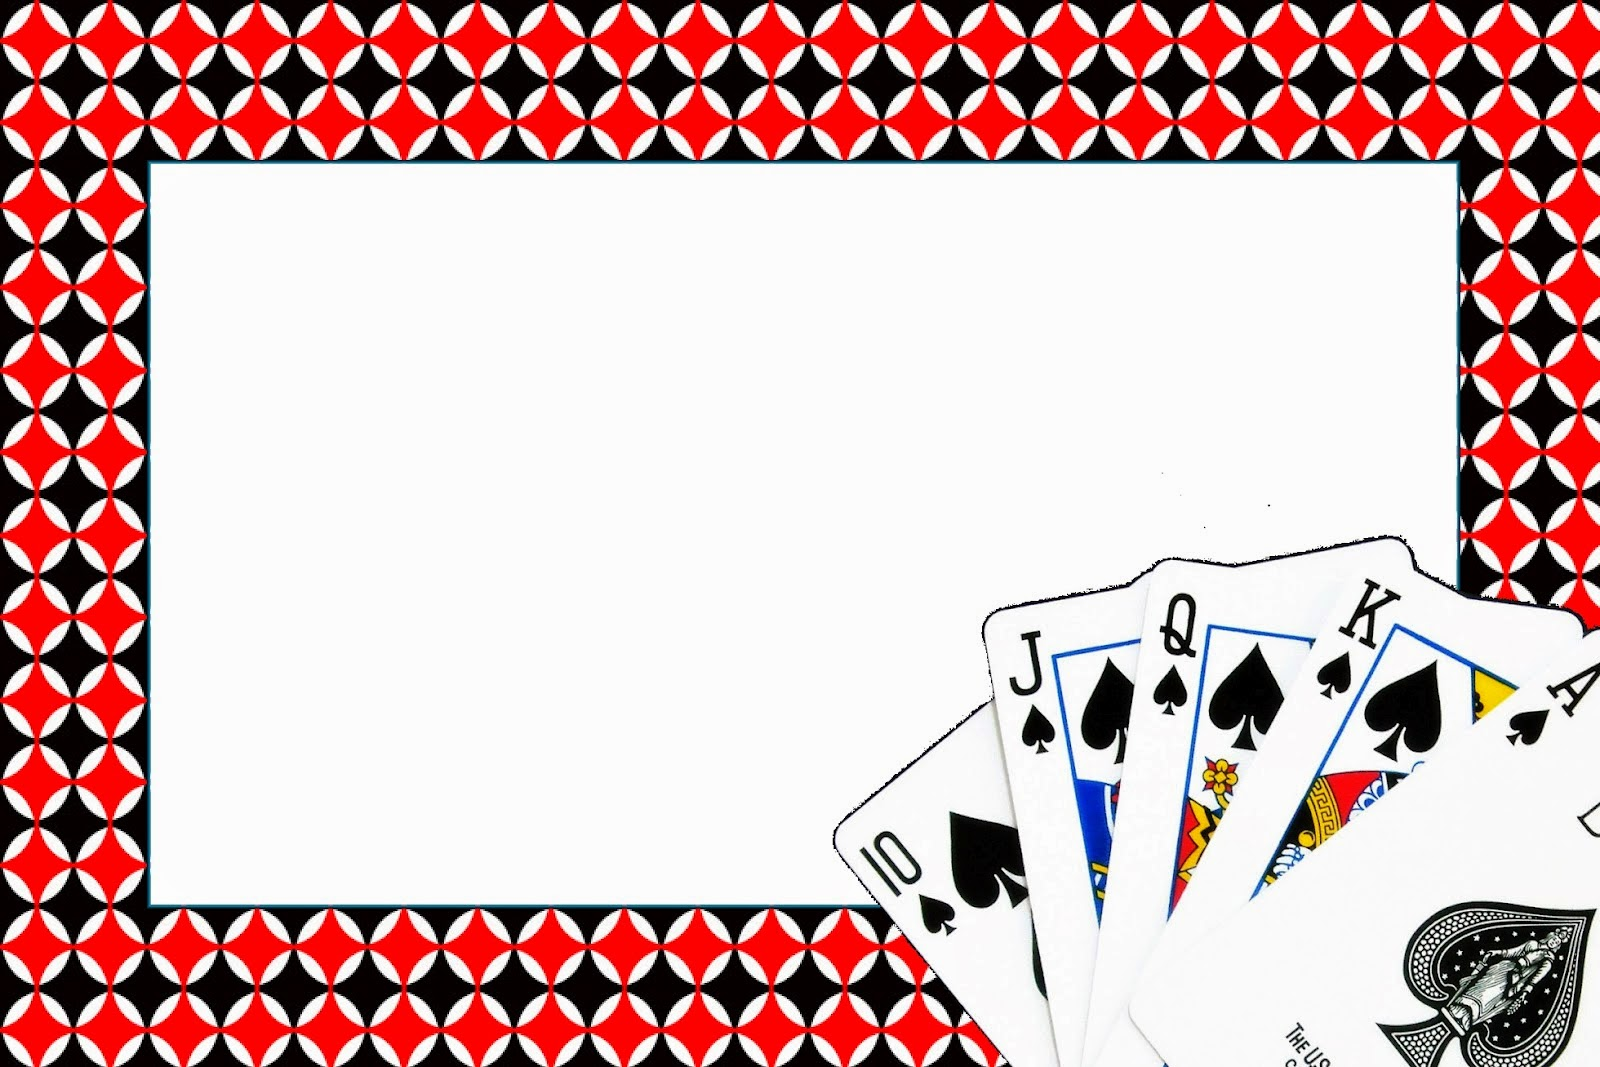 Intertops Red Casino Review With 115 Player Comments